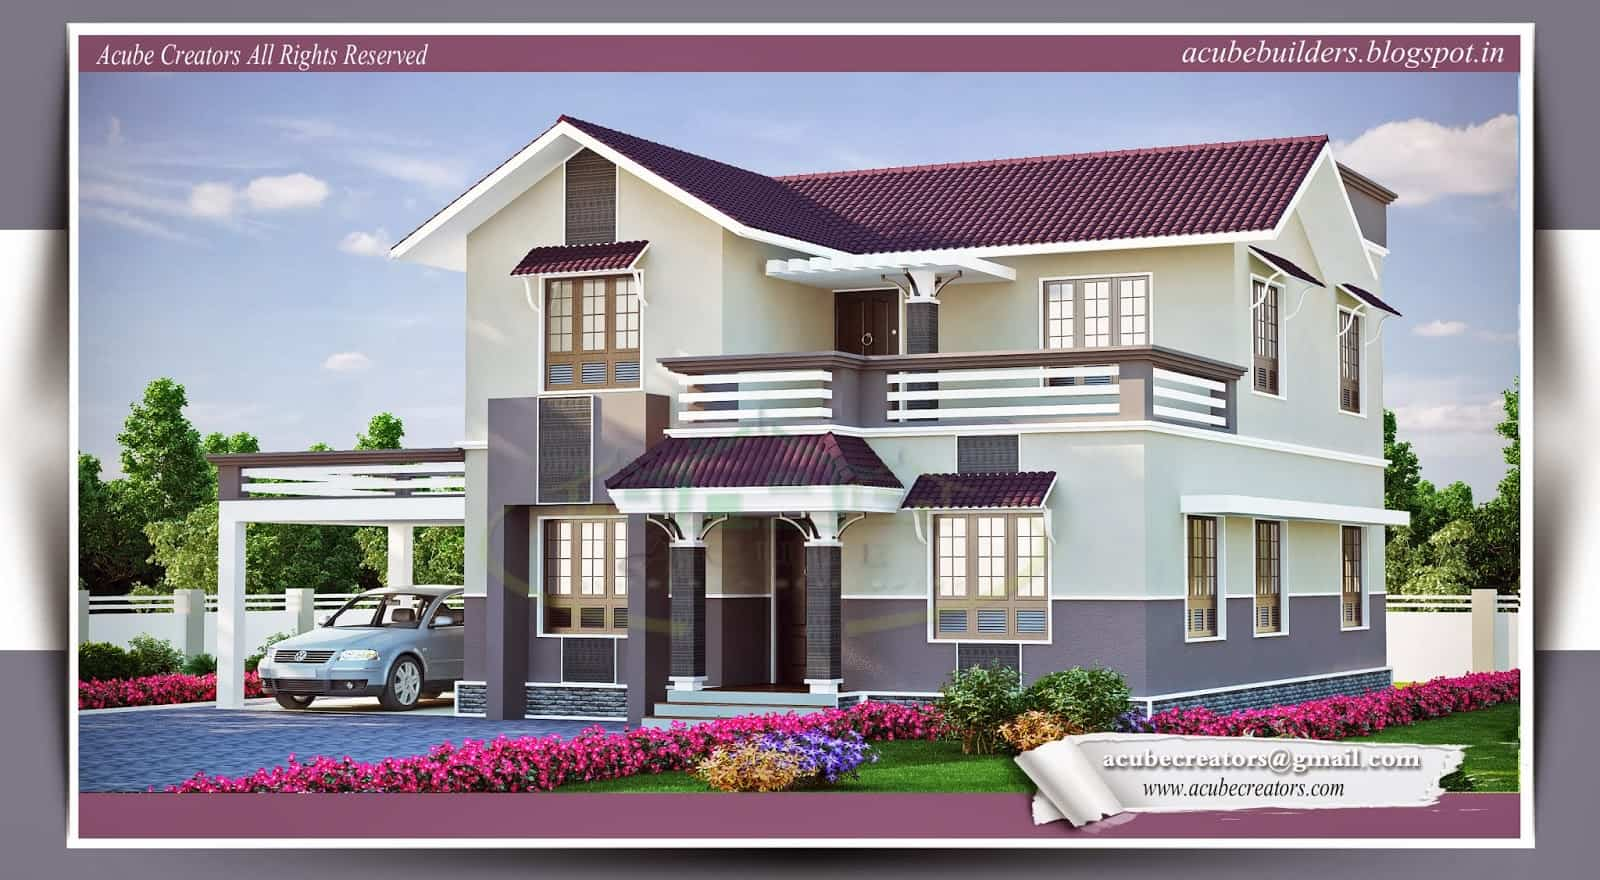 Building elevation 2016 model calendar template 2016 for Model house design 2016